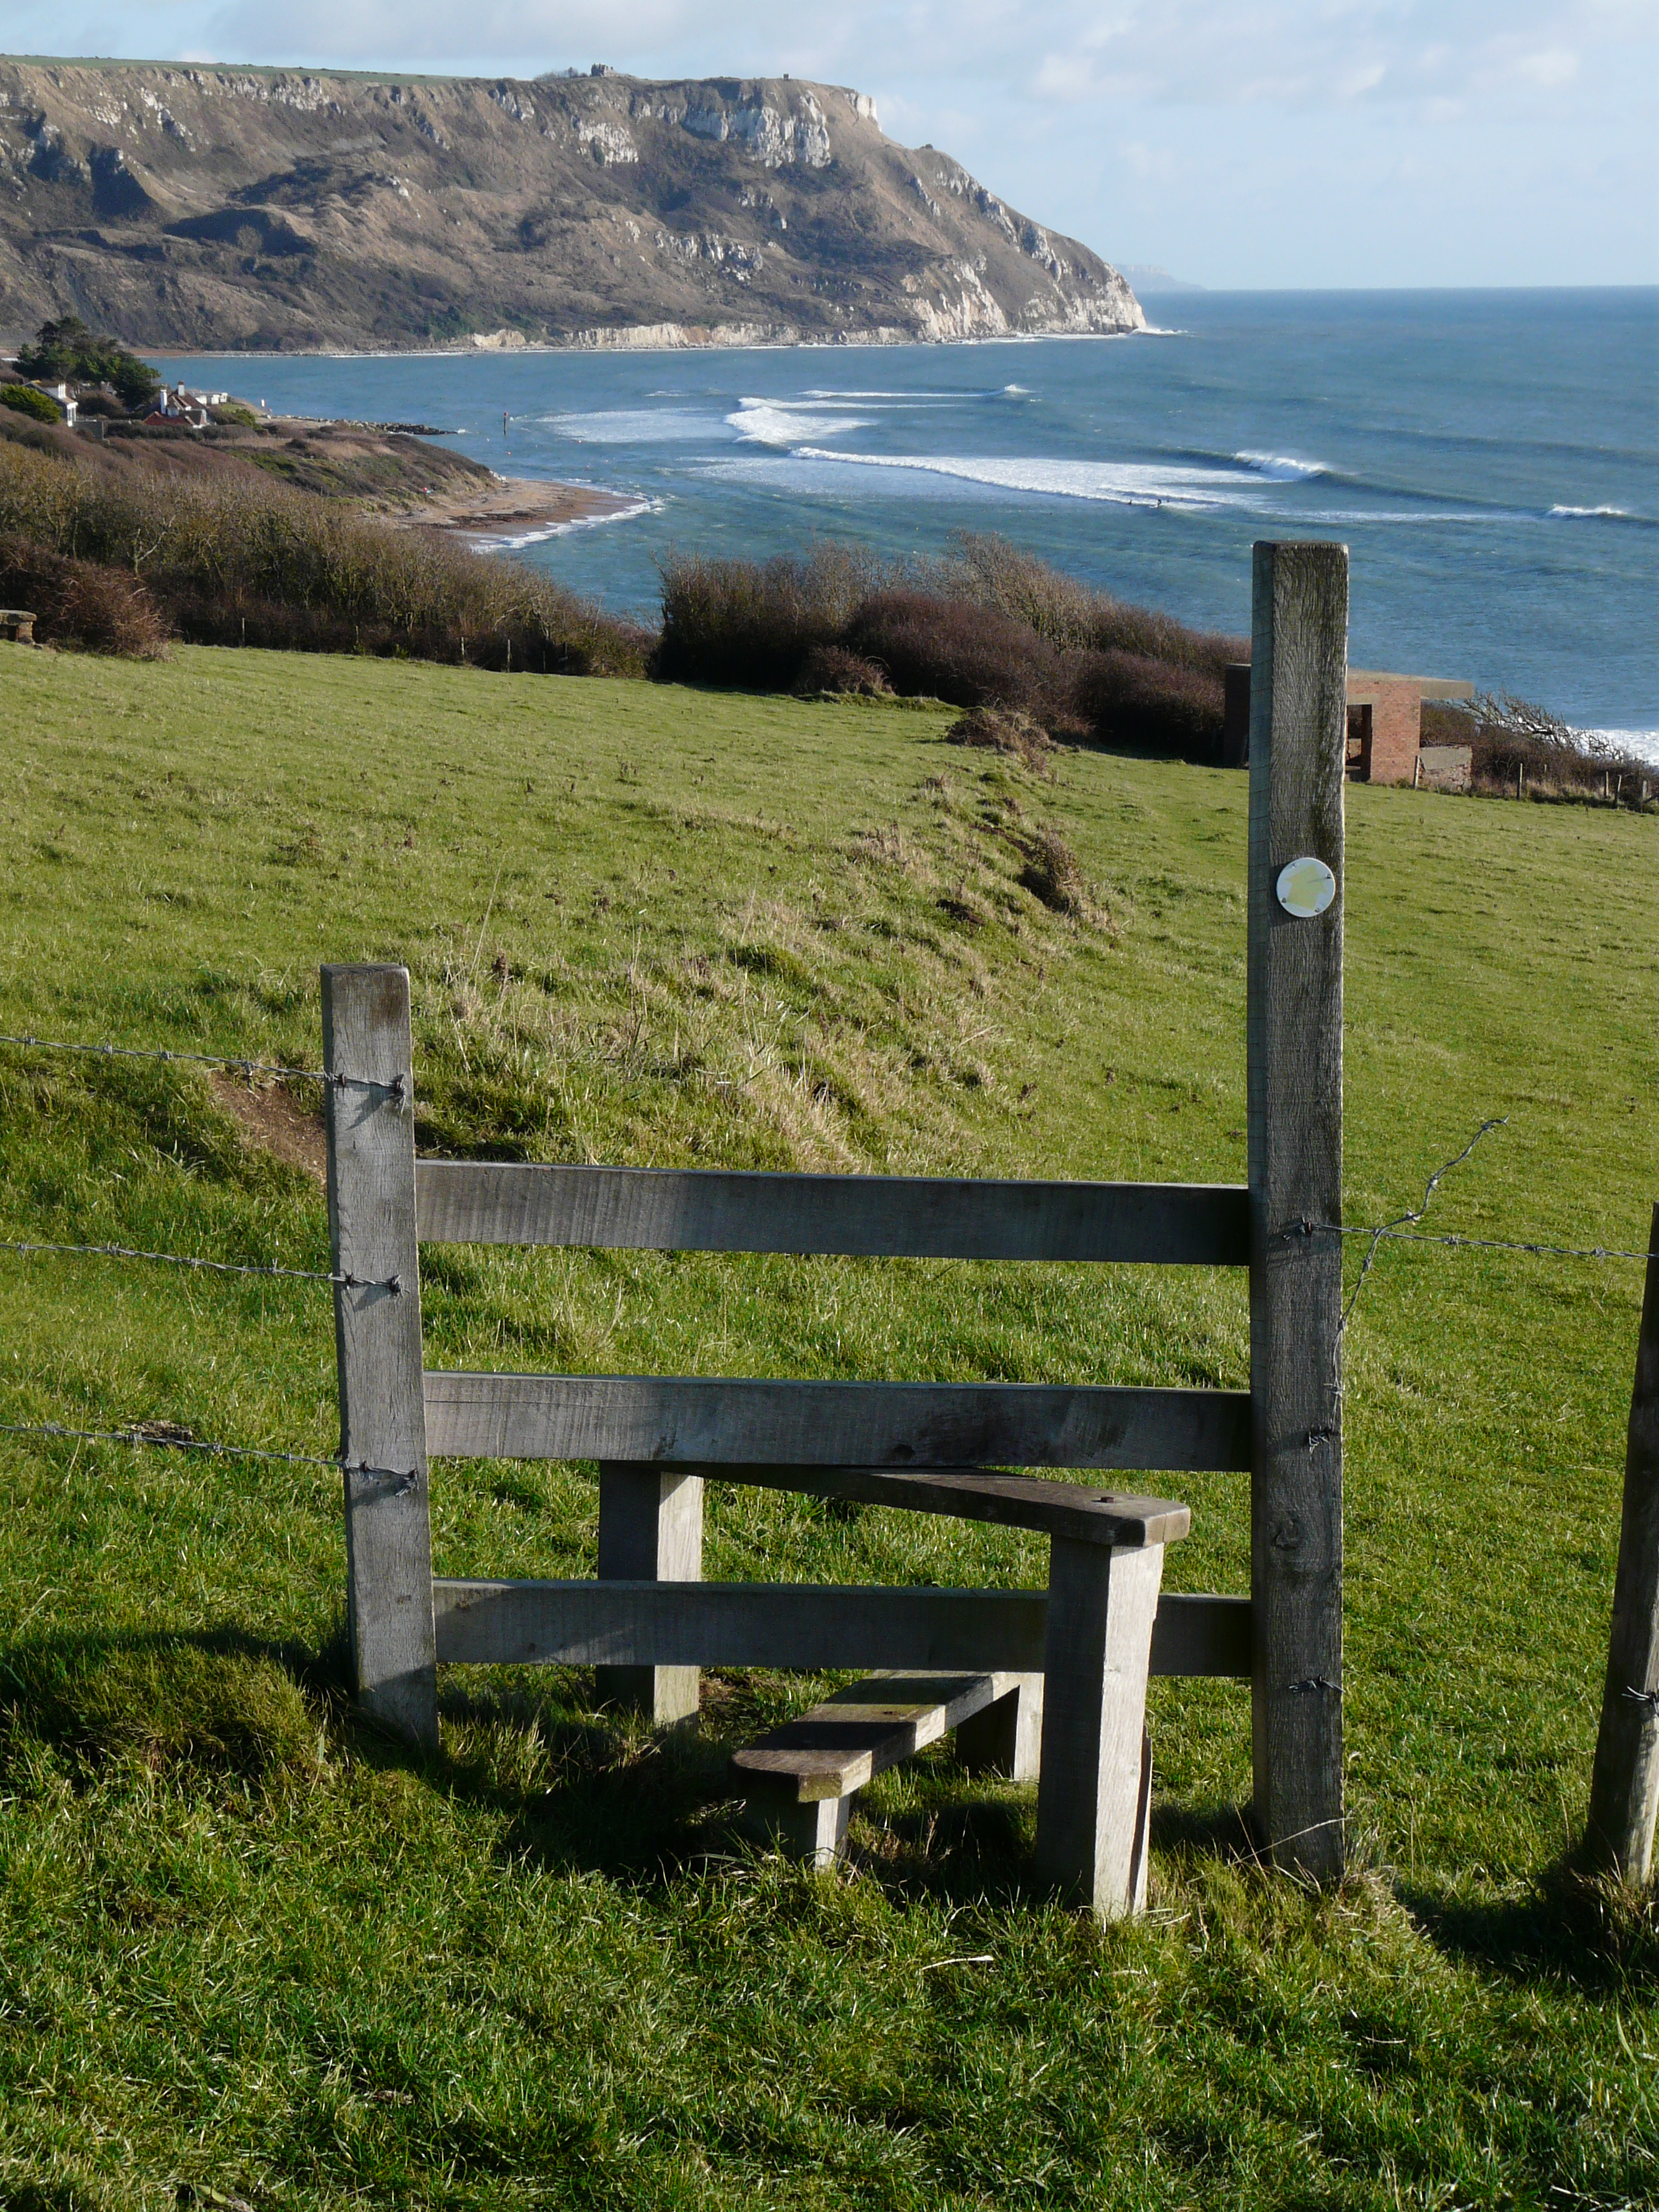 South West Coast Path at Ringstead Bay